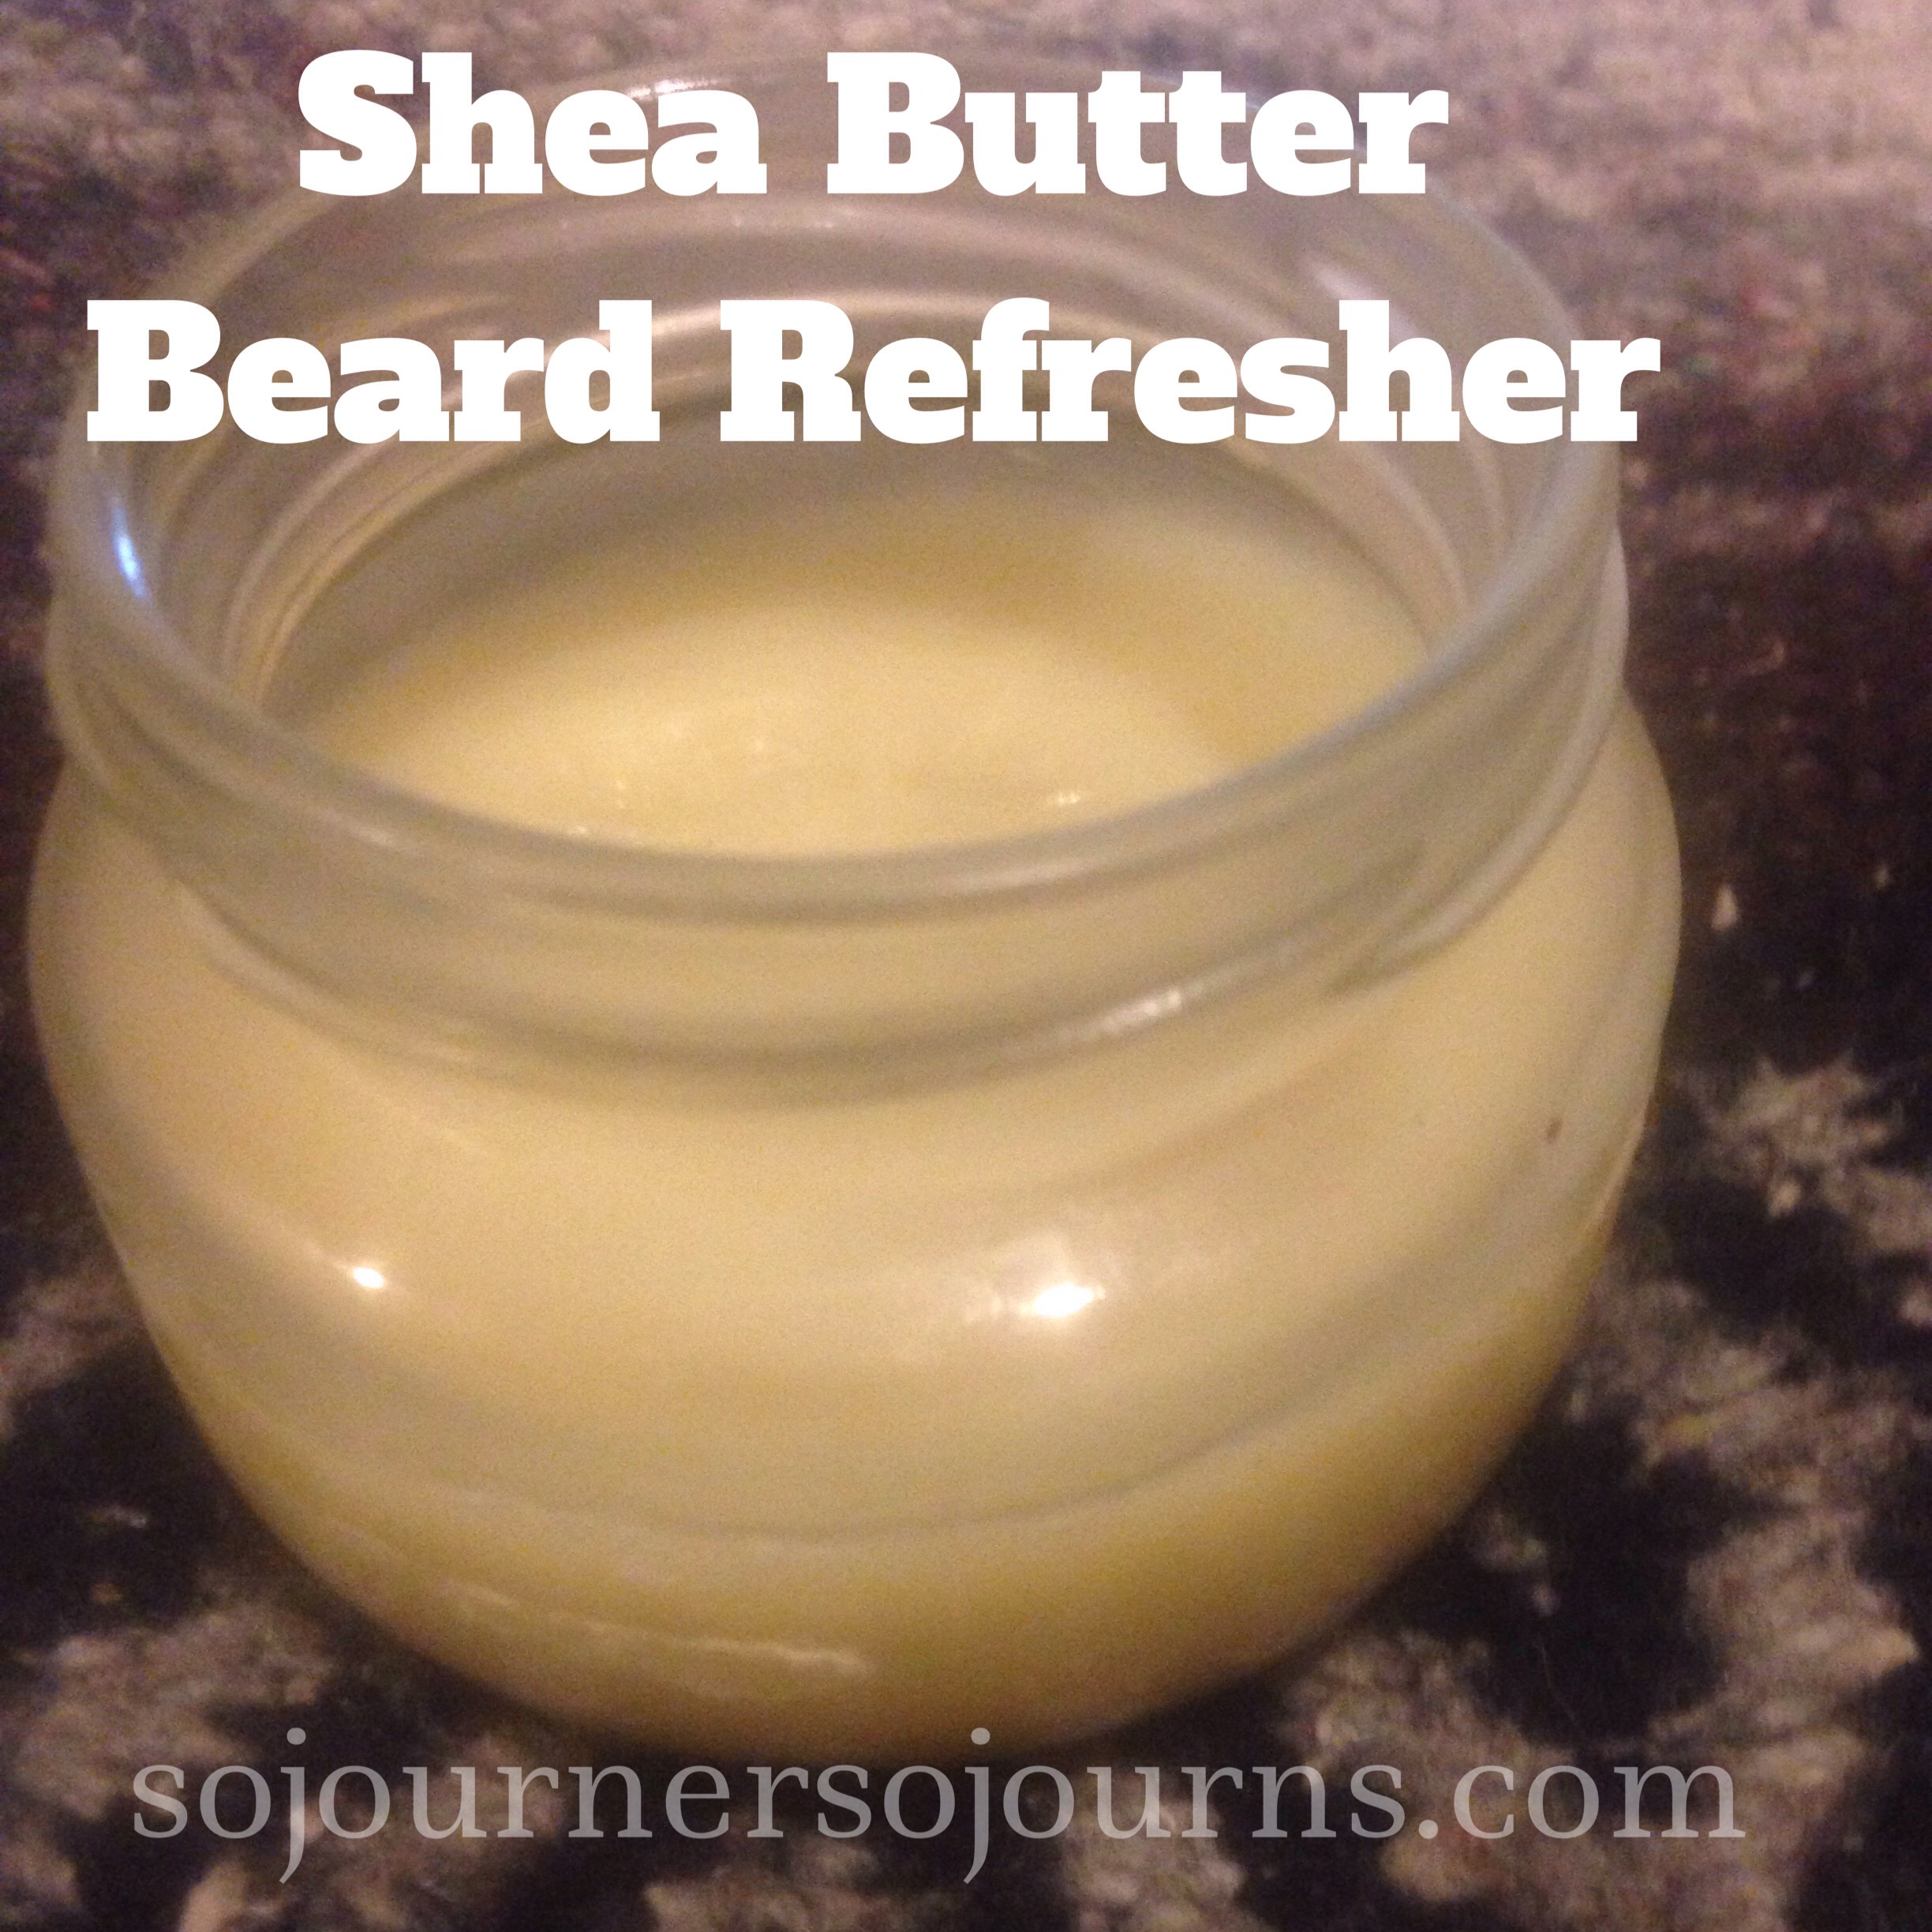 Shea Butter Beard Refresher